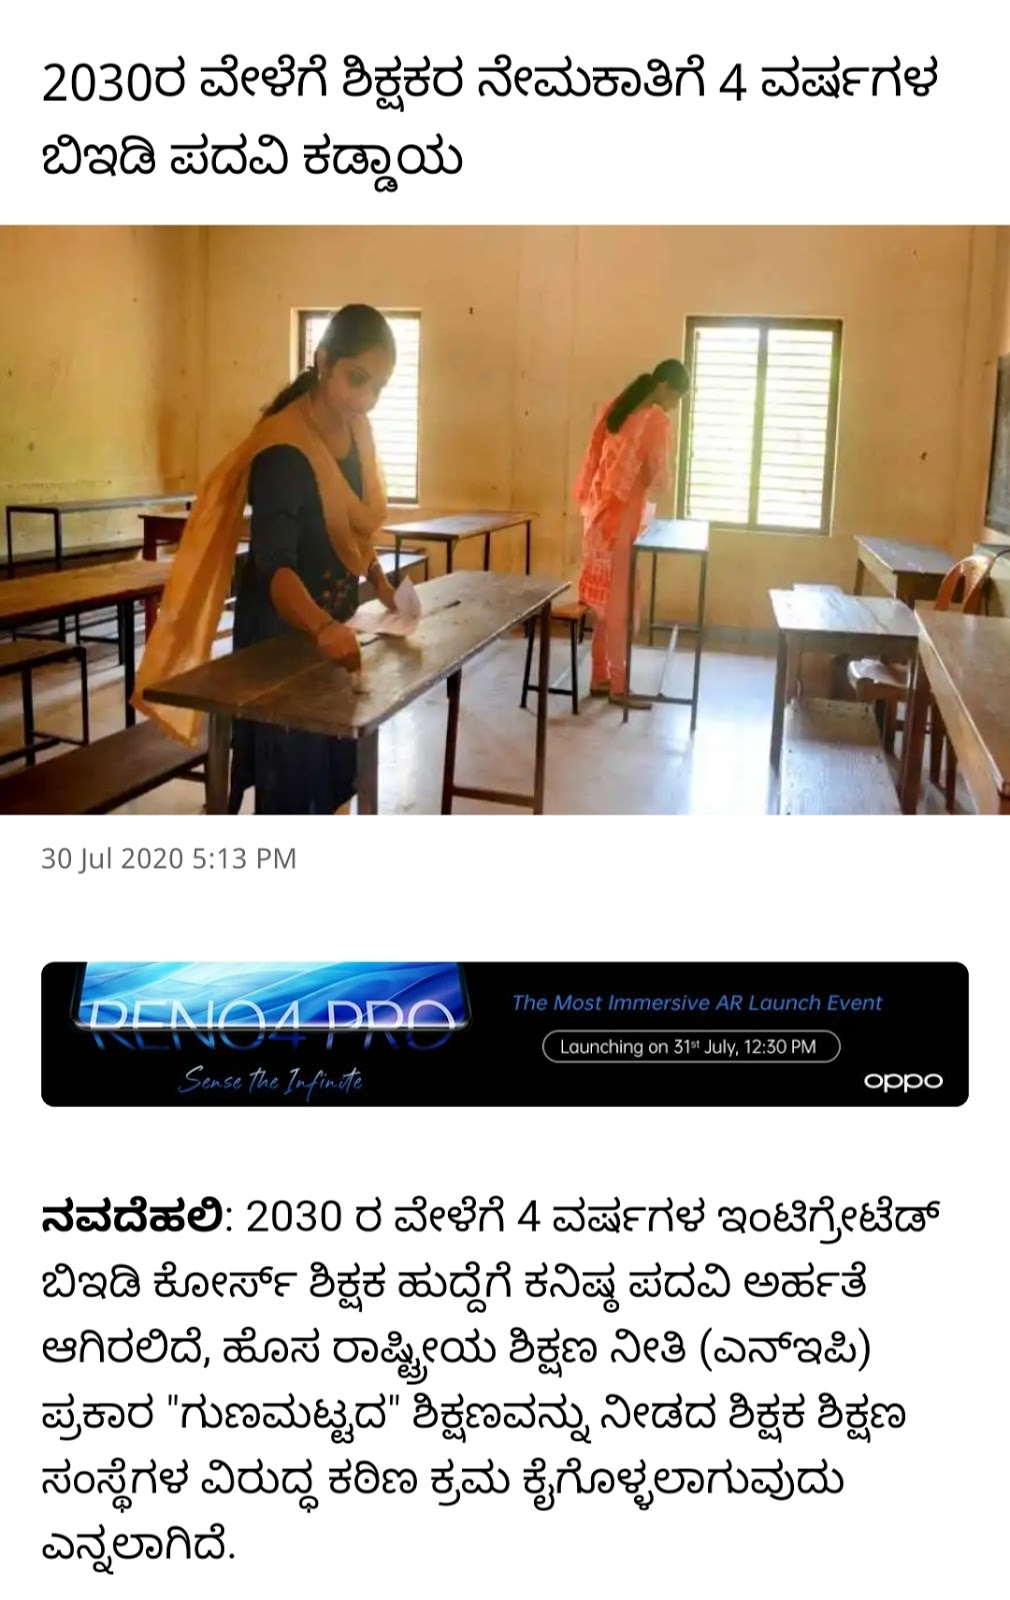 A 4-year BED degree is mandatory for teacher recruitment by 2030